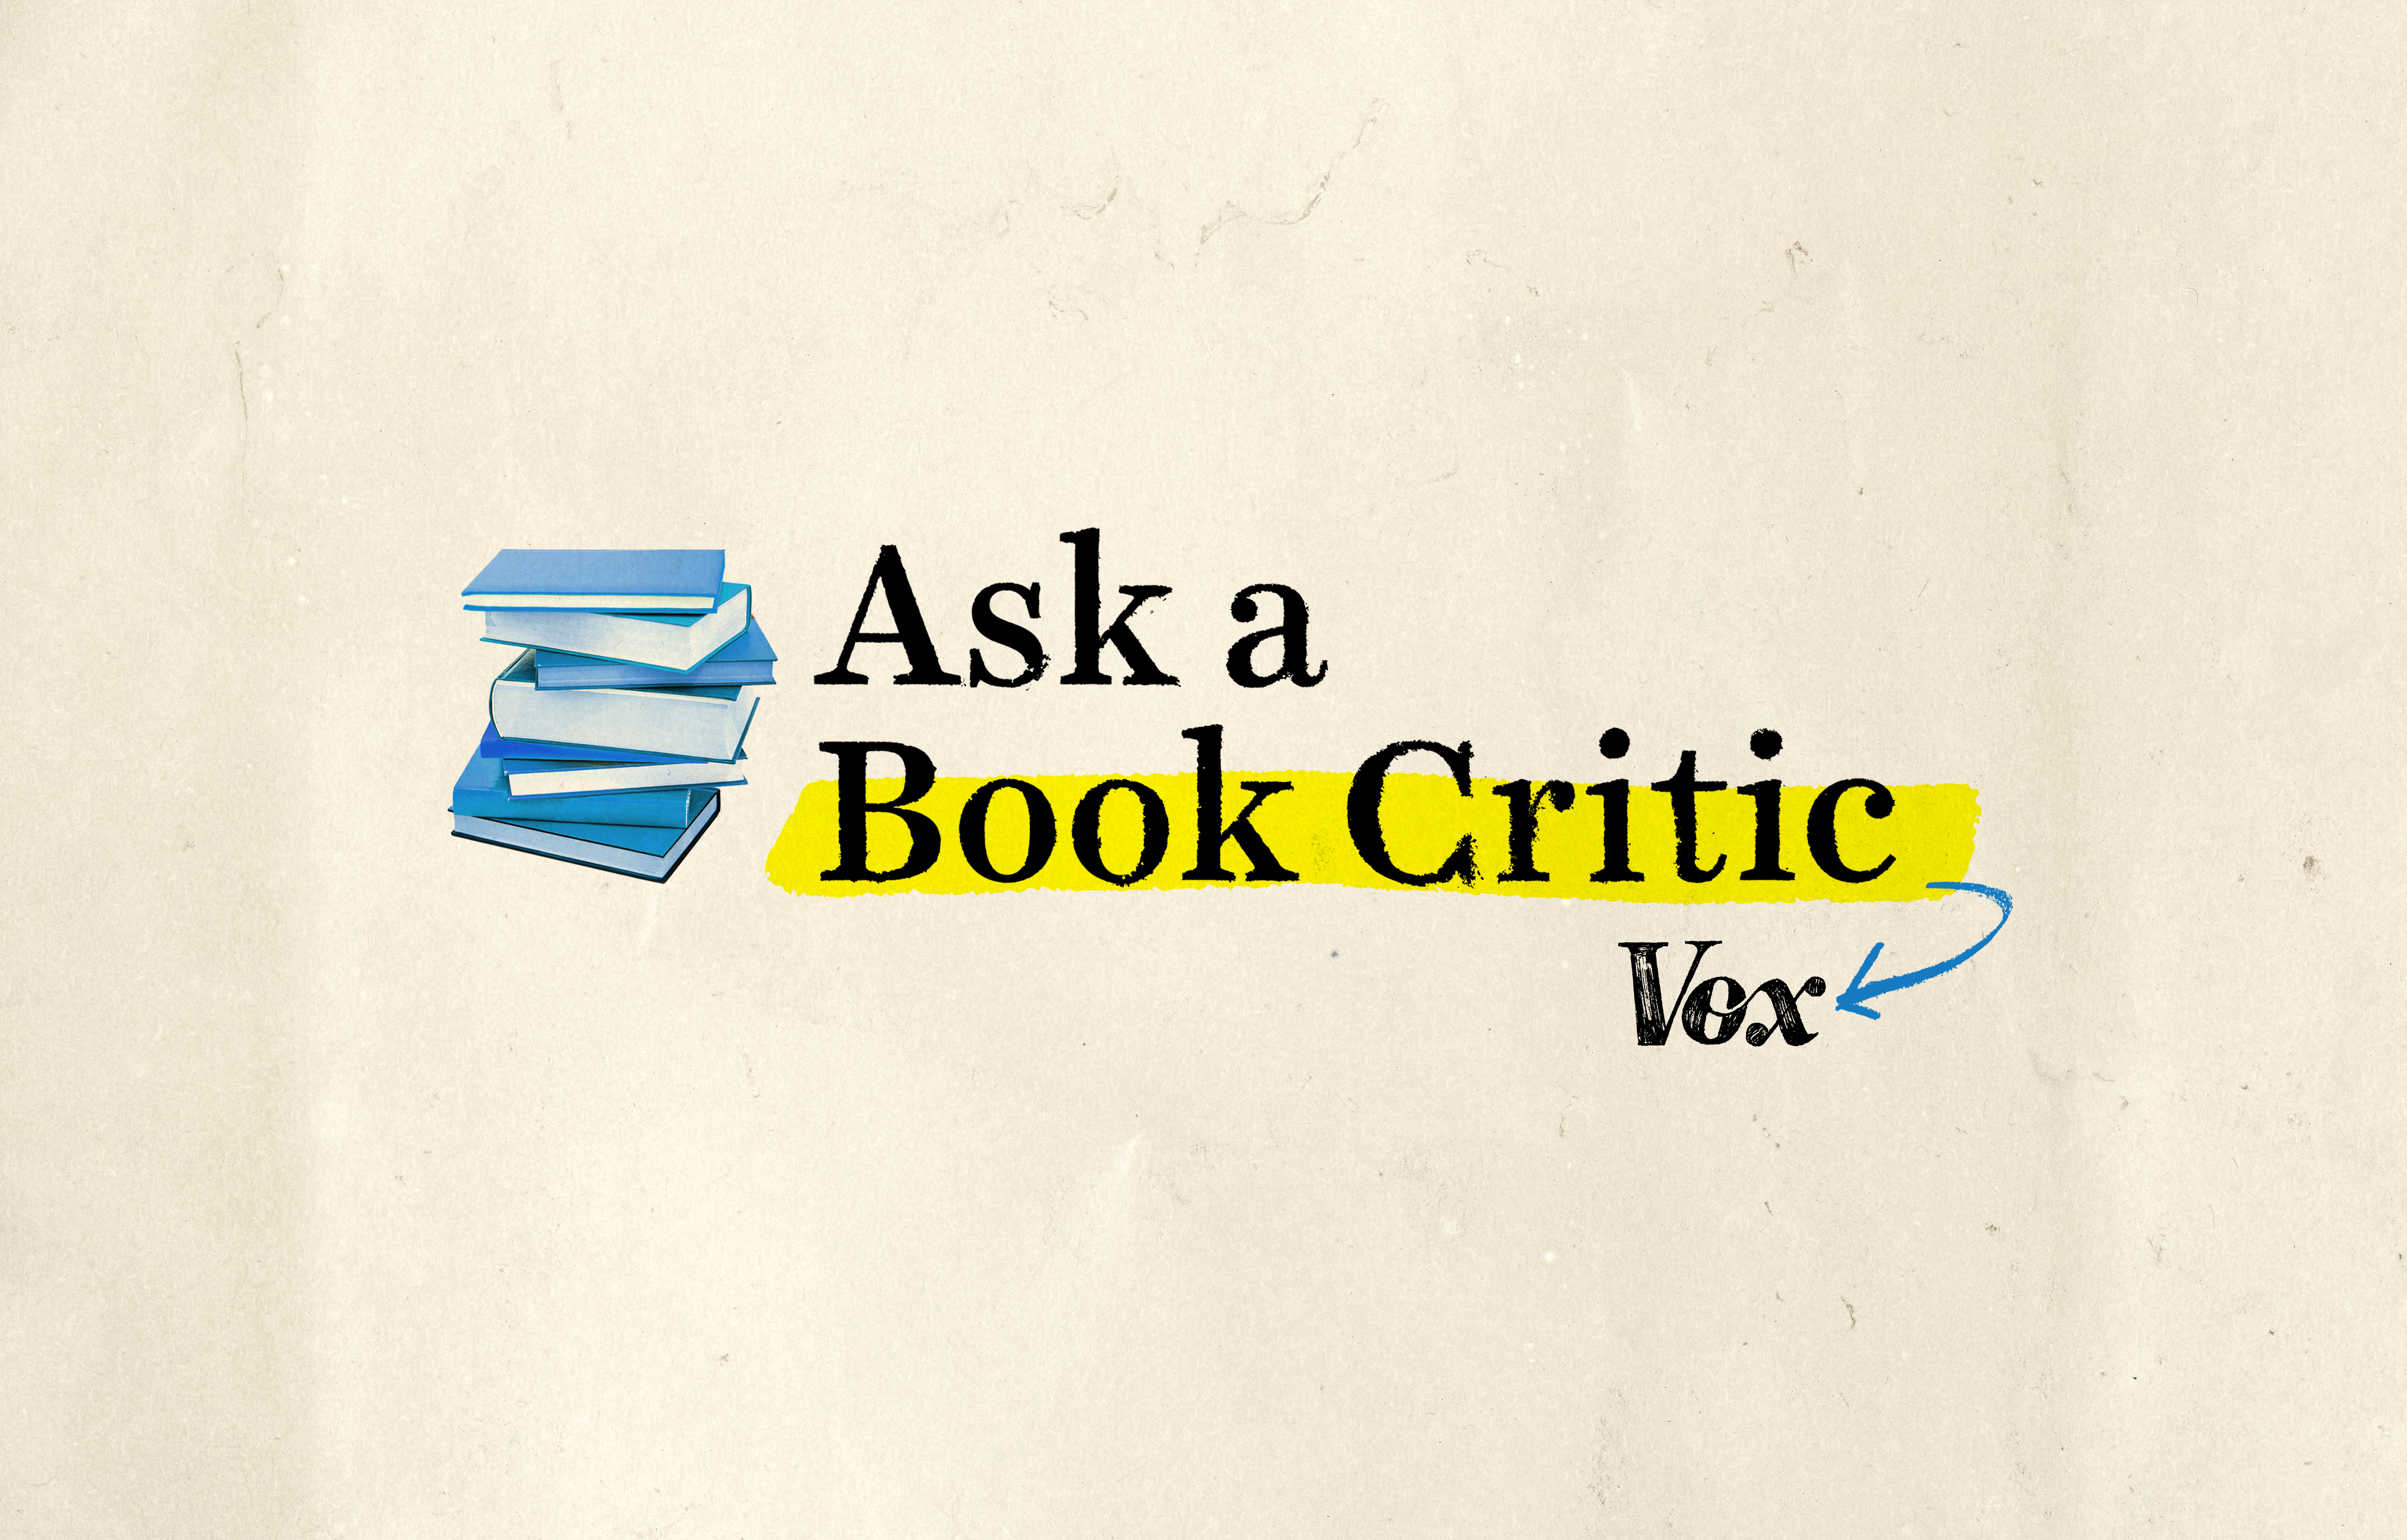 Ask a Book Critic